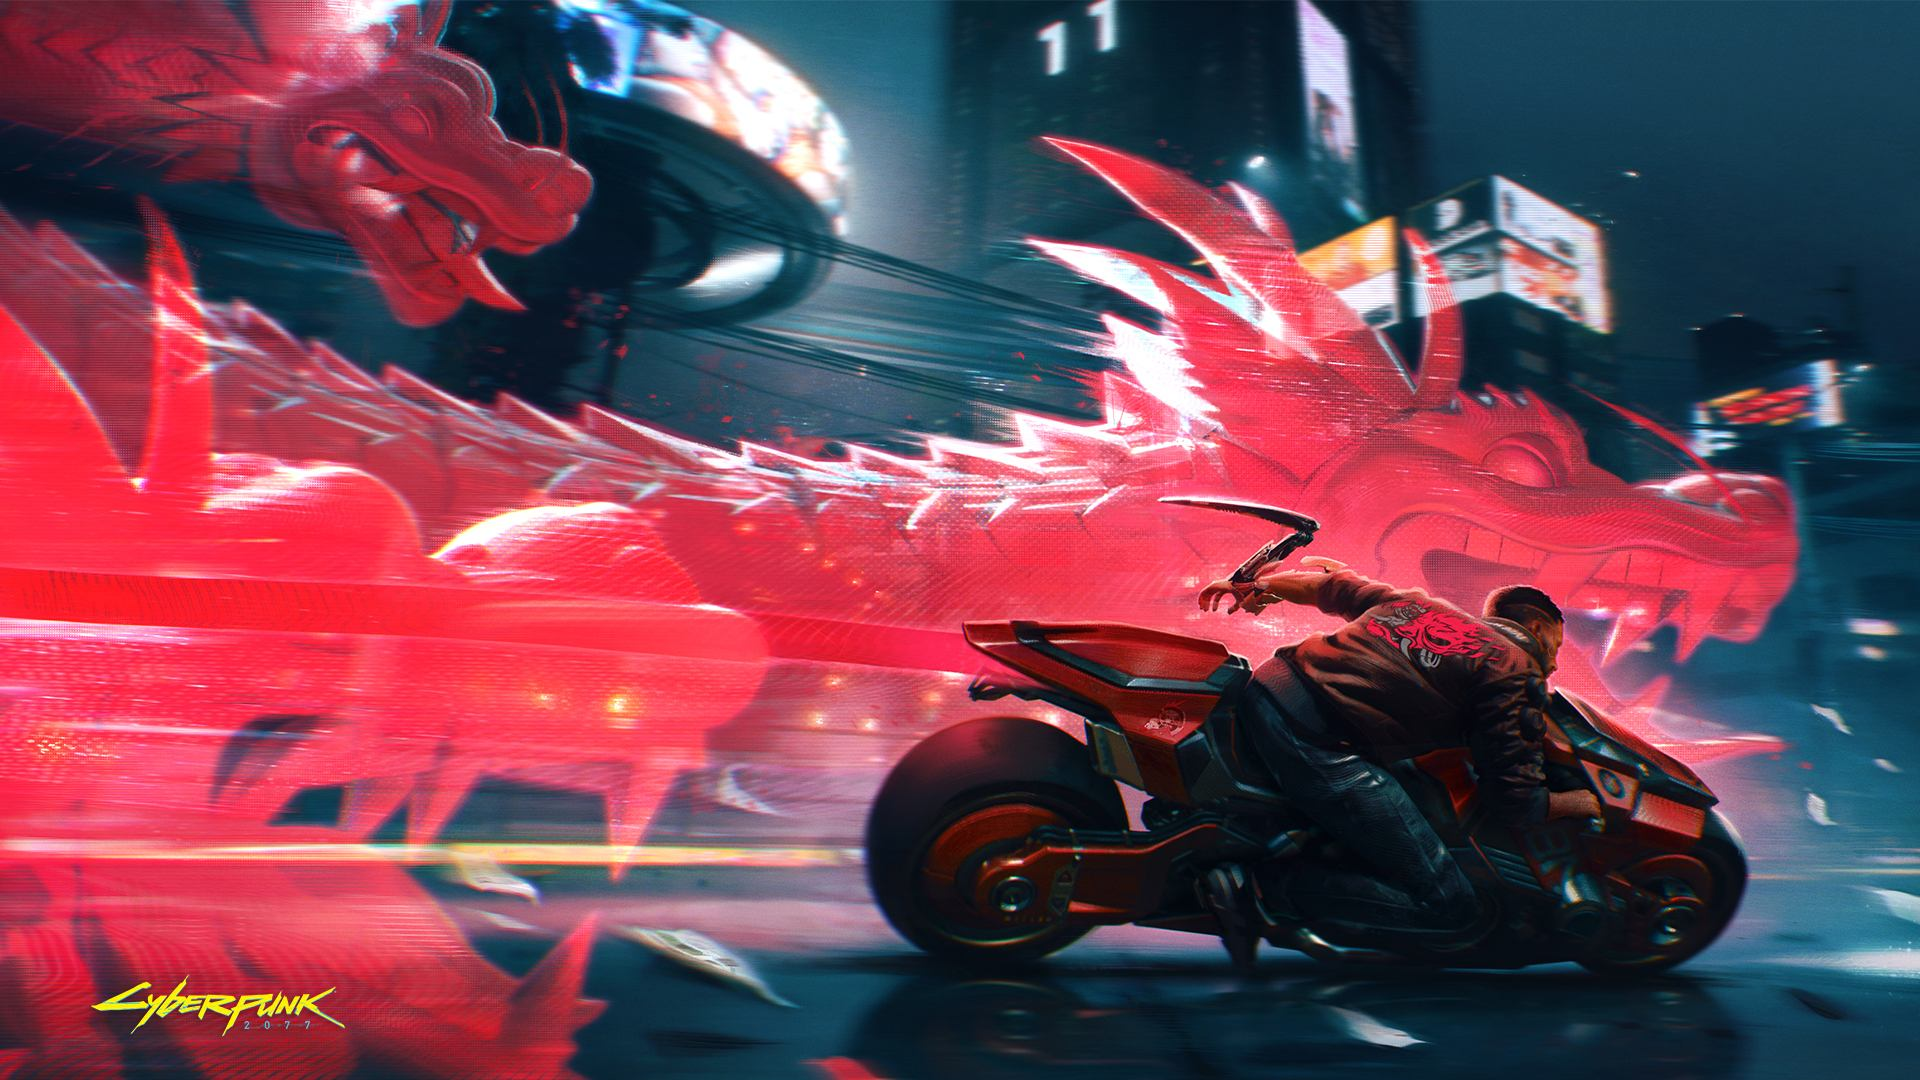 Cyberpunk 2077 Launches With Some Real Dystopia In Tow Opinion Gamesindustry Biz